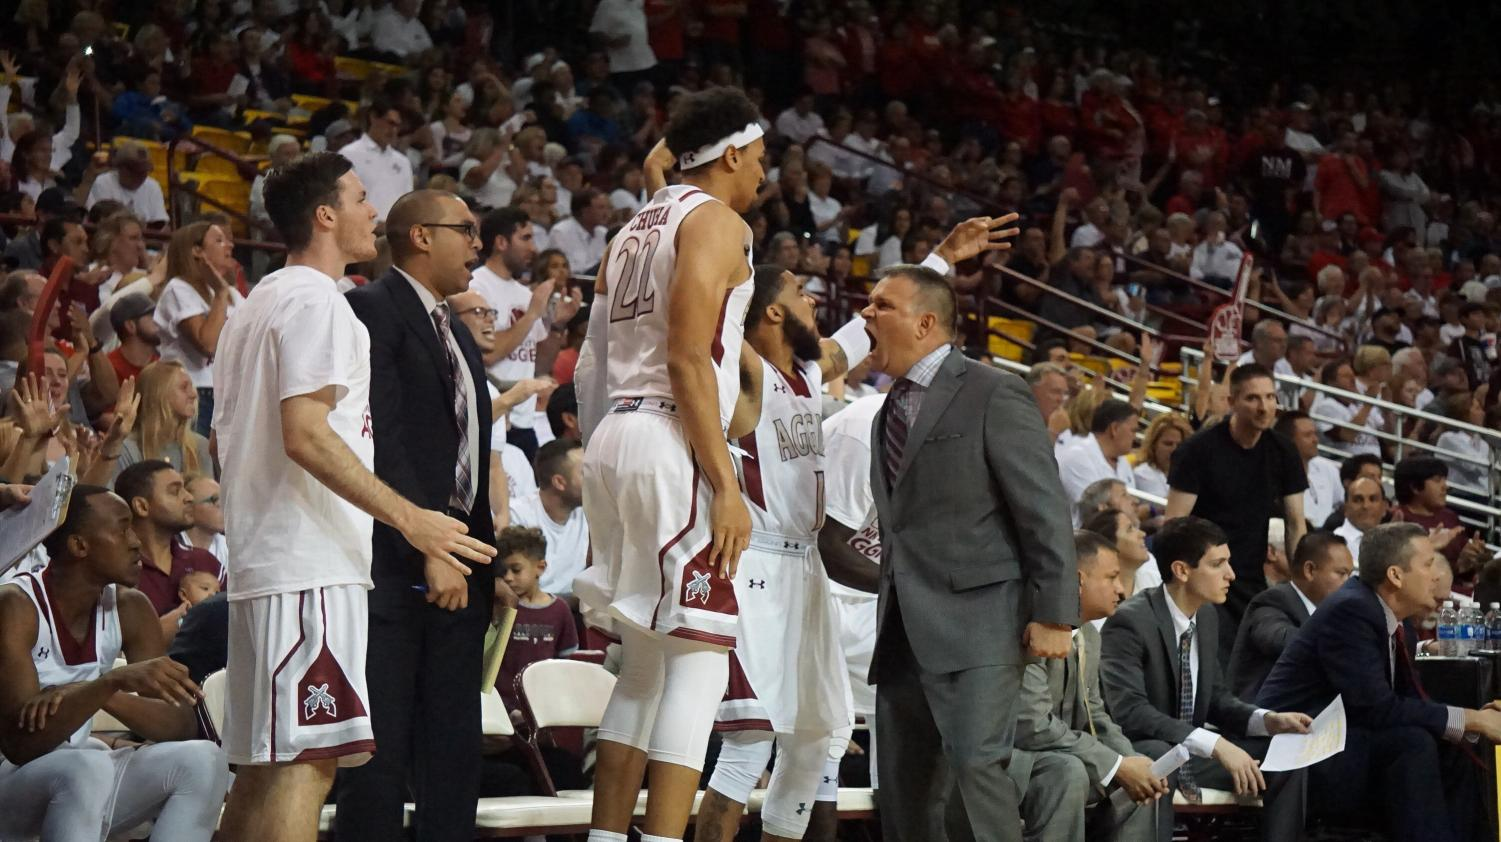 Head Coach Chris Jans hyping the bench after an Aggie score.